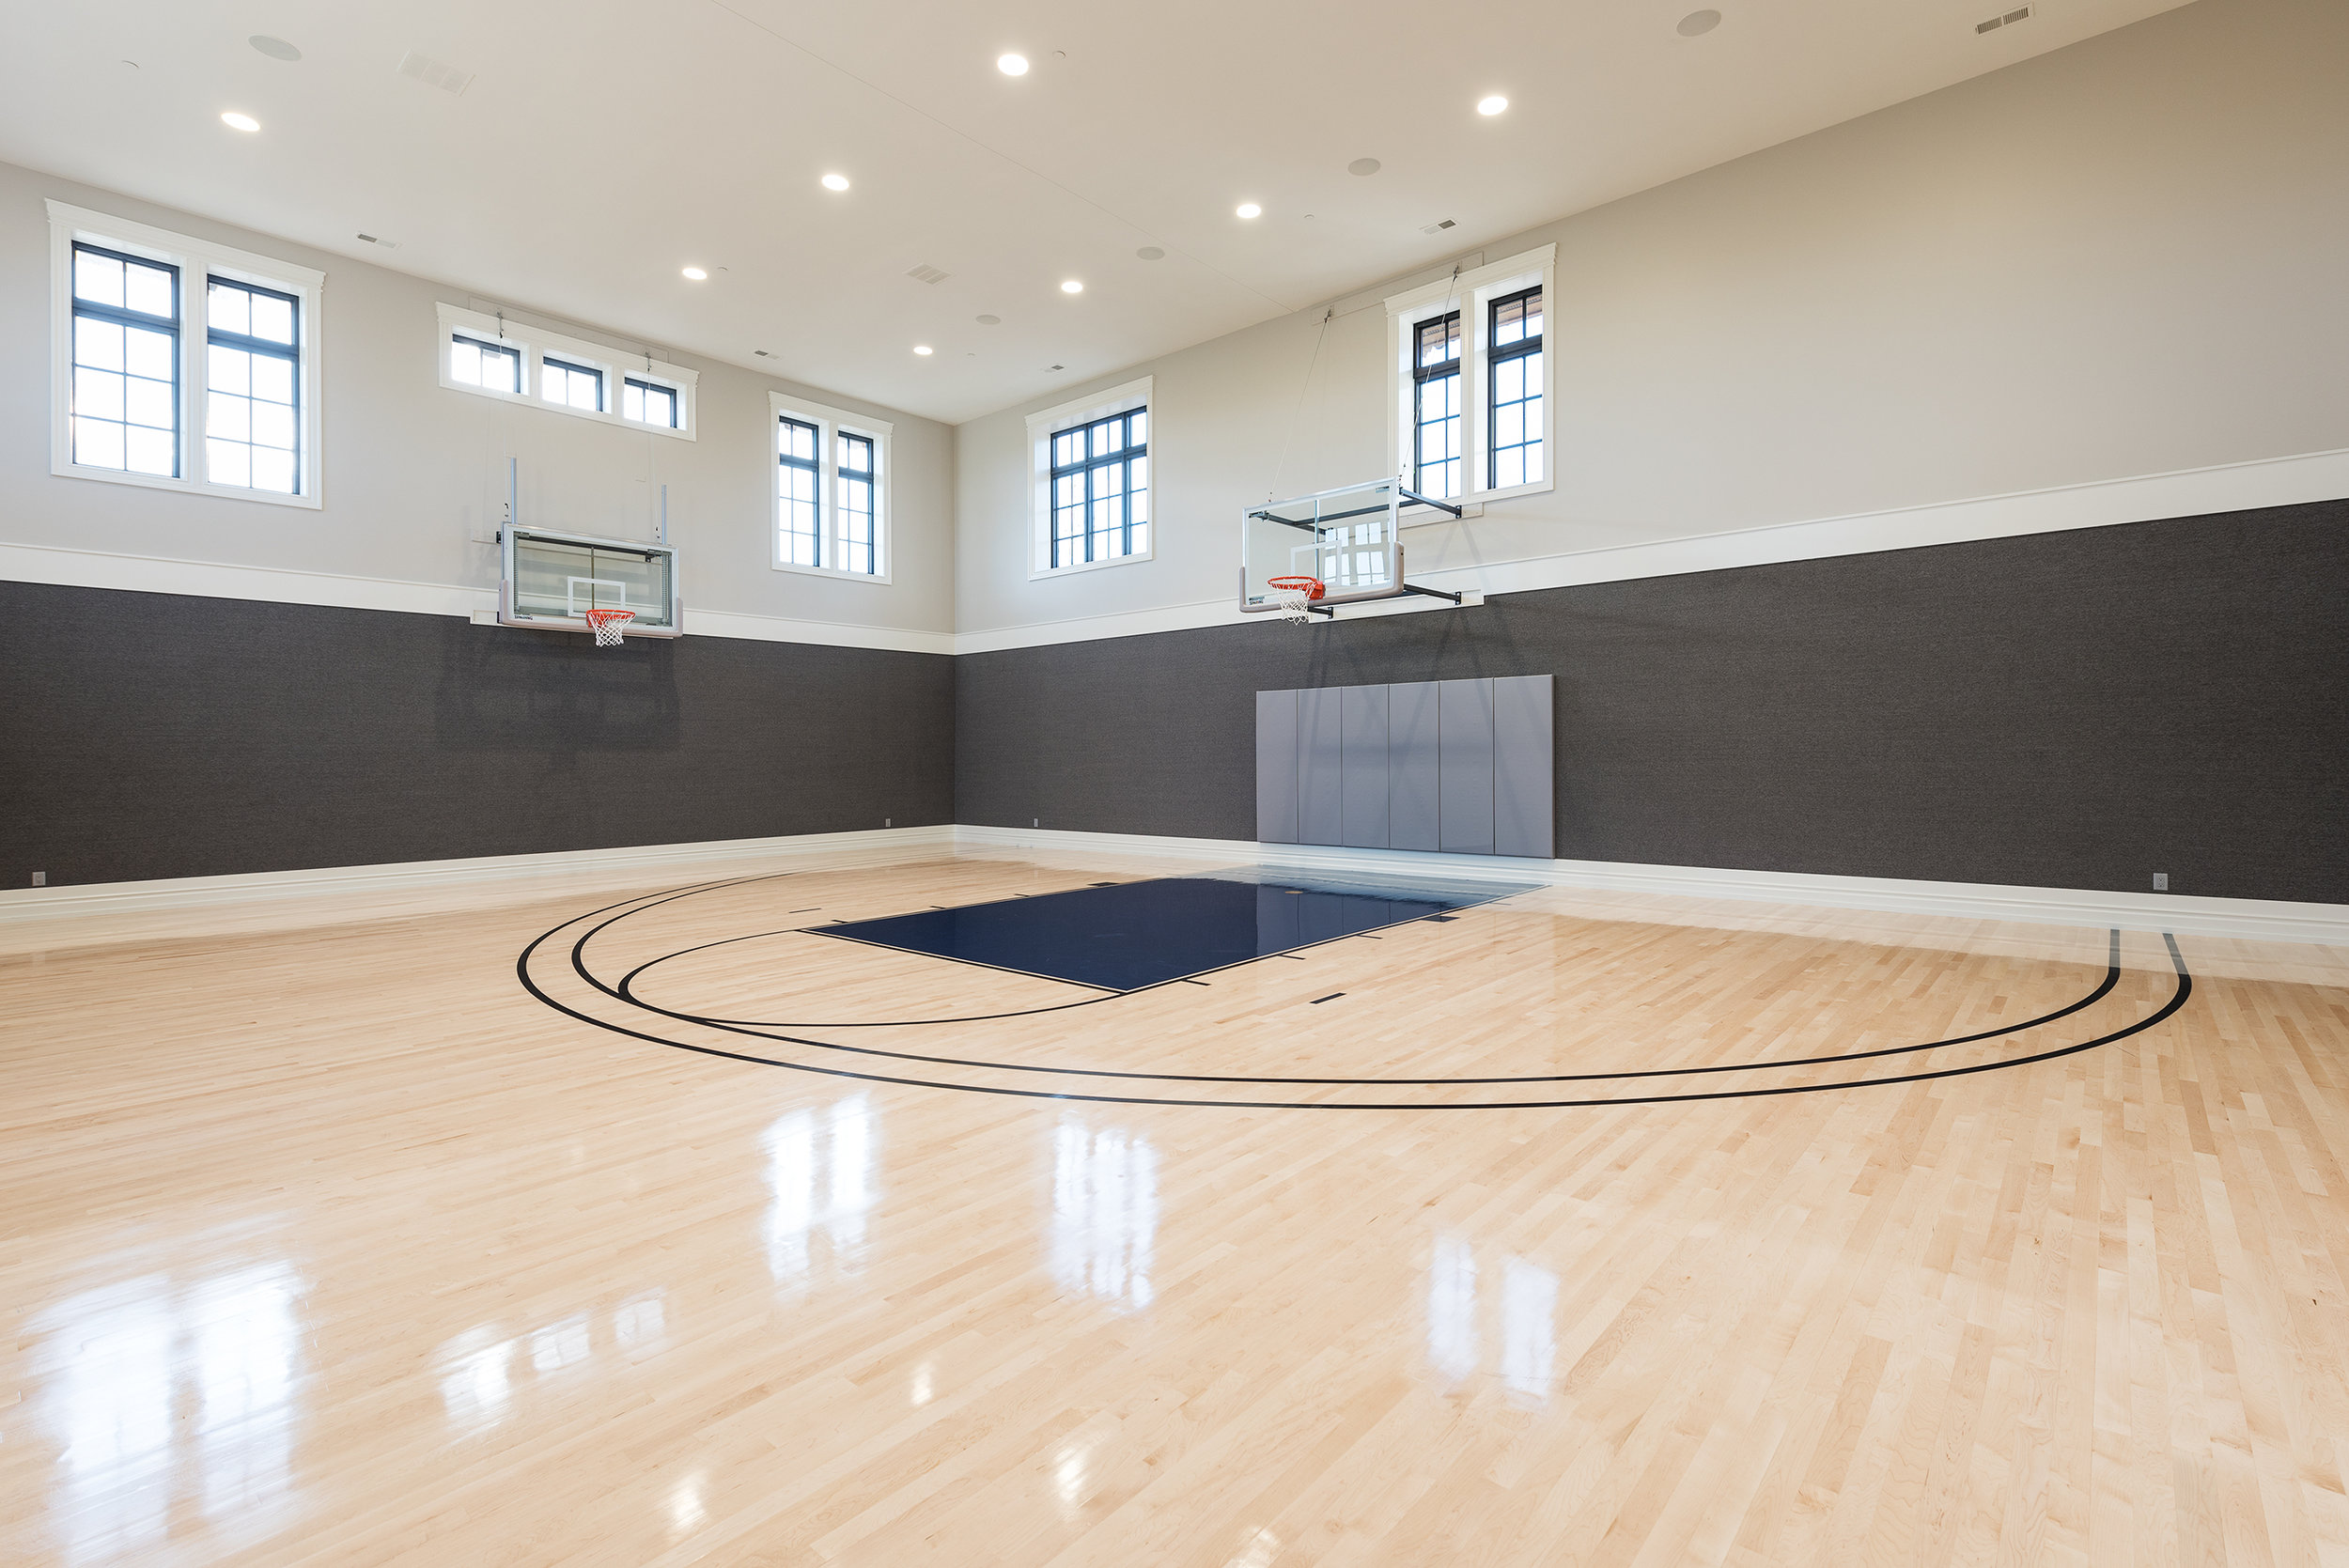 Spacious Indoor Basketball Court